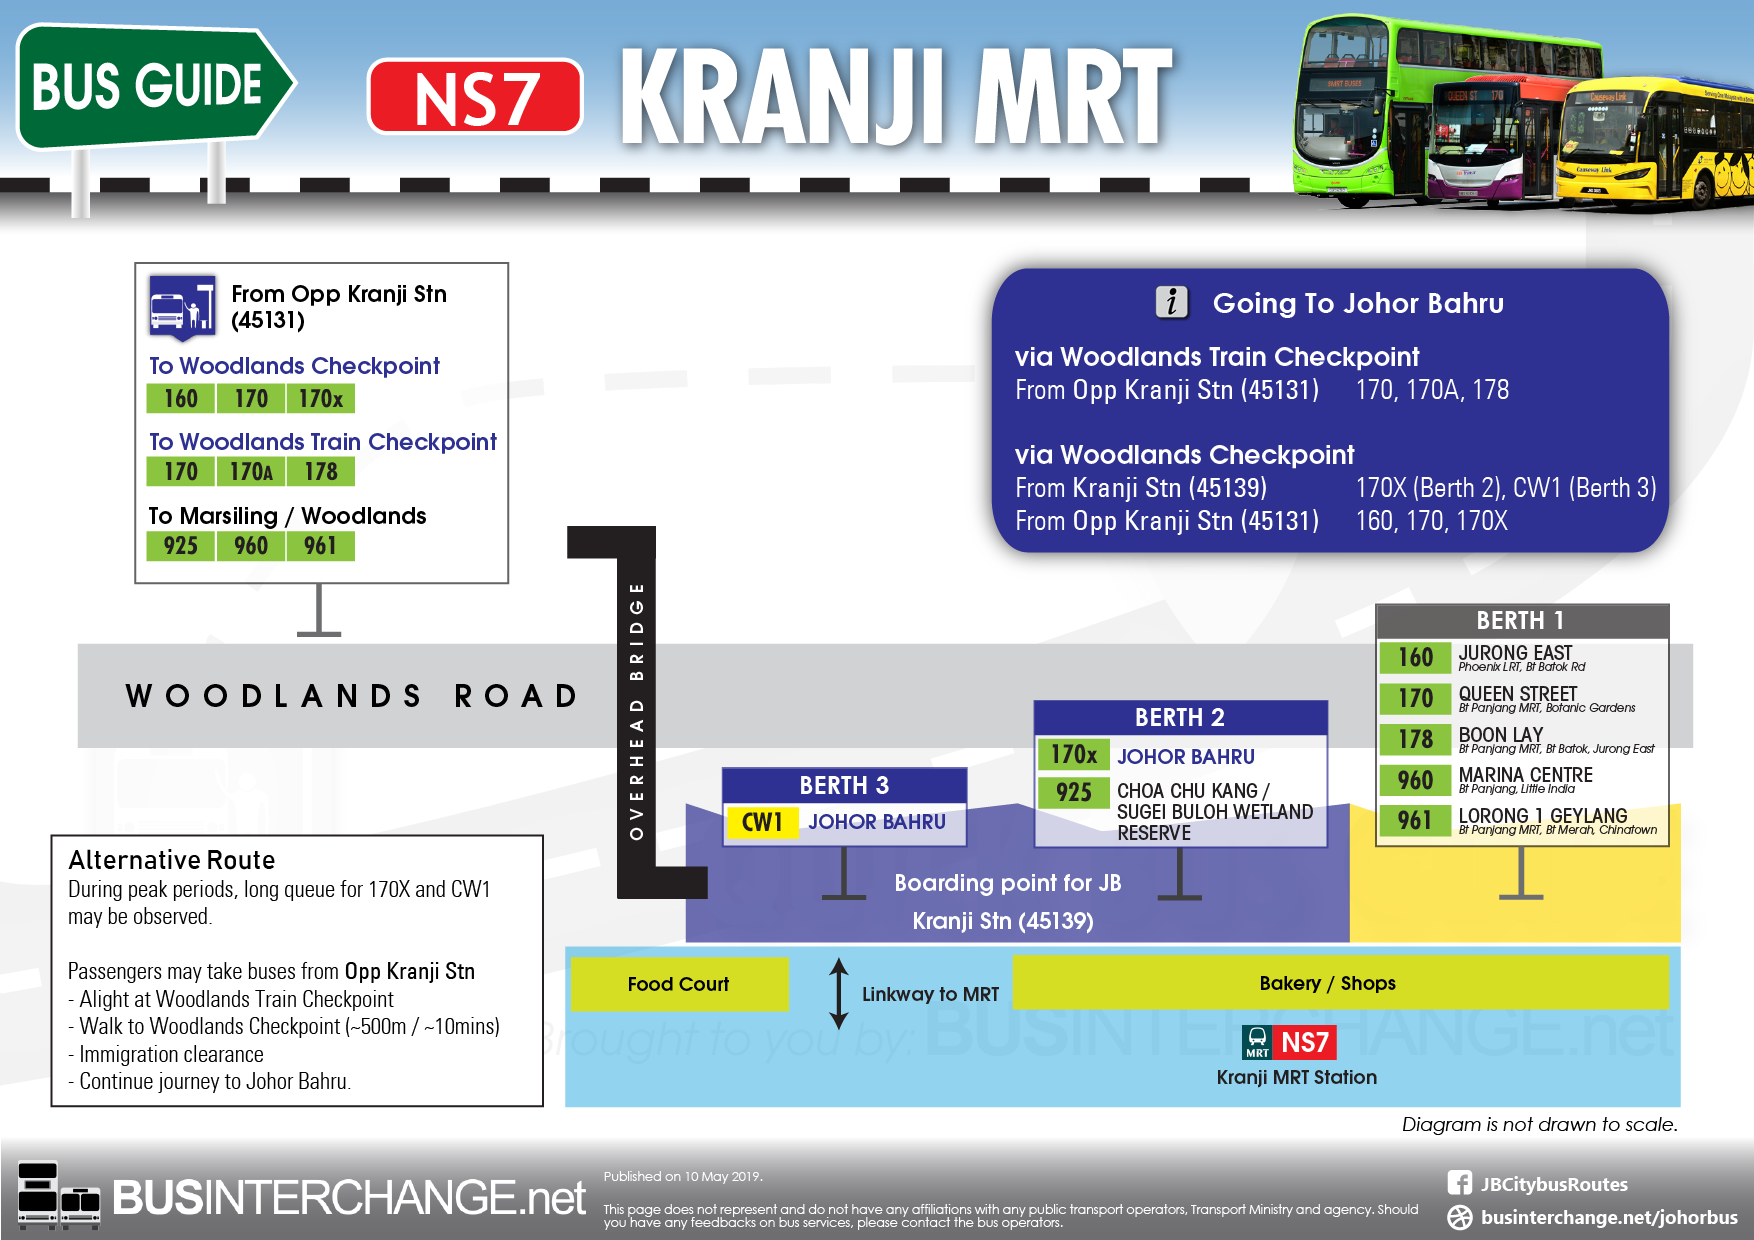 Bus guide from Kranji MRT station